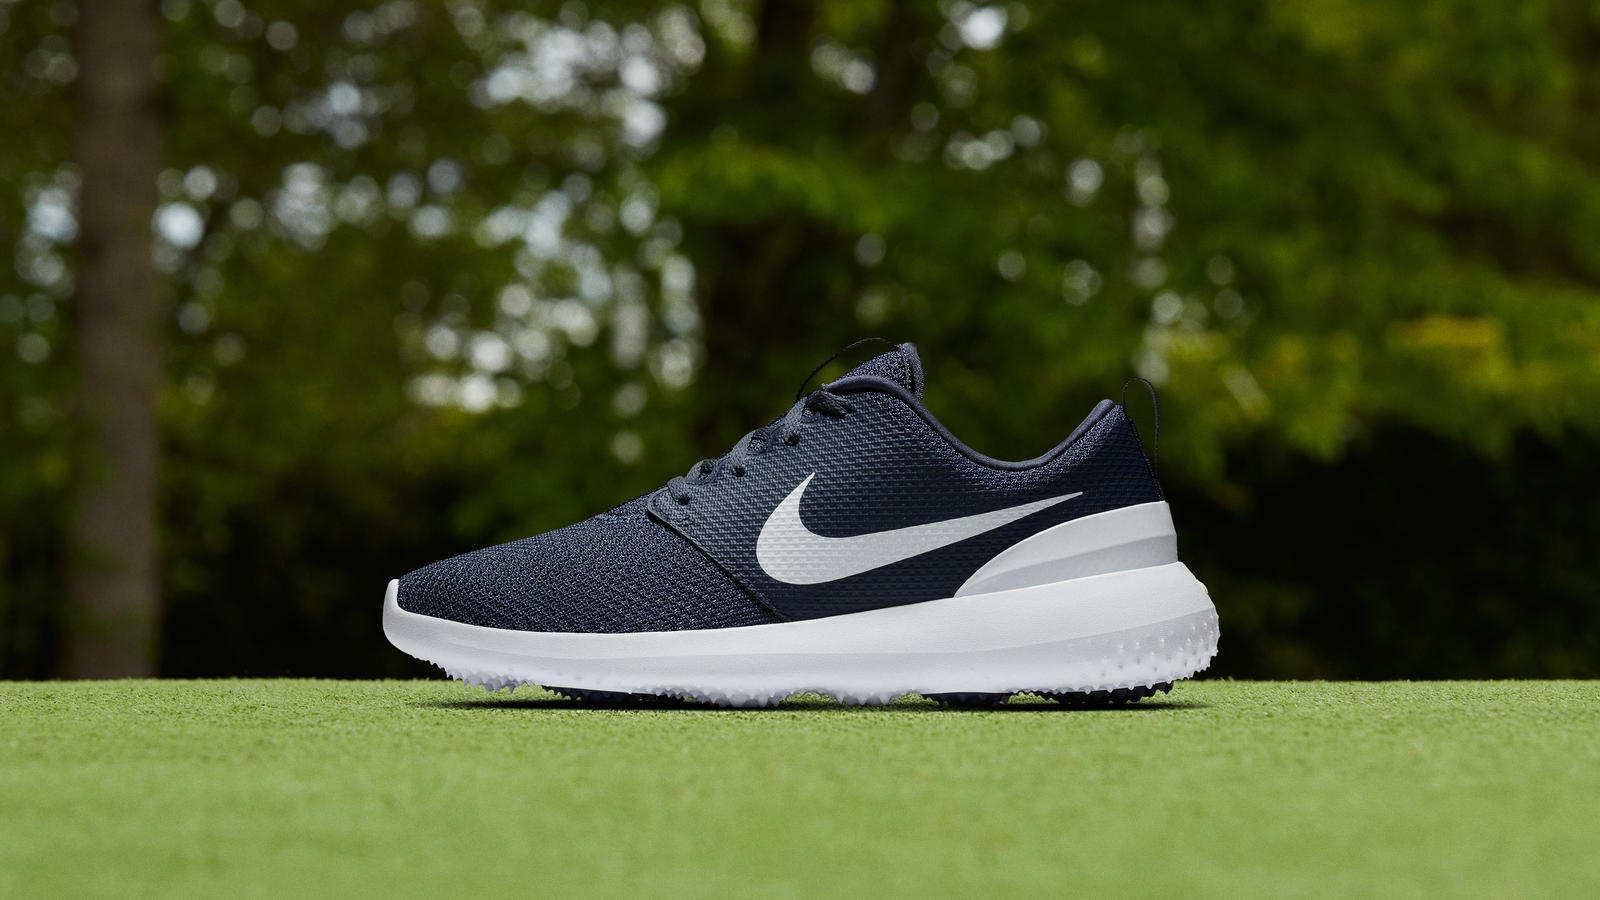 Nike golf roshe side view hd 1600